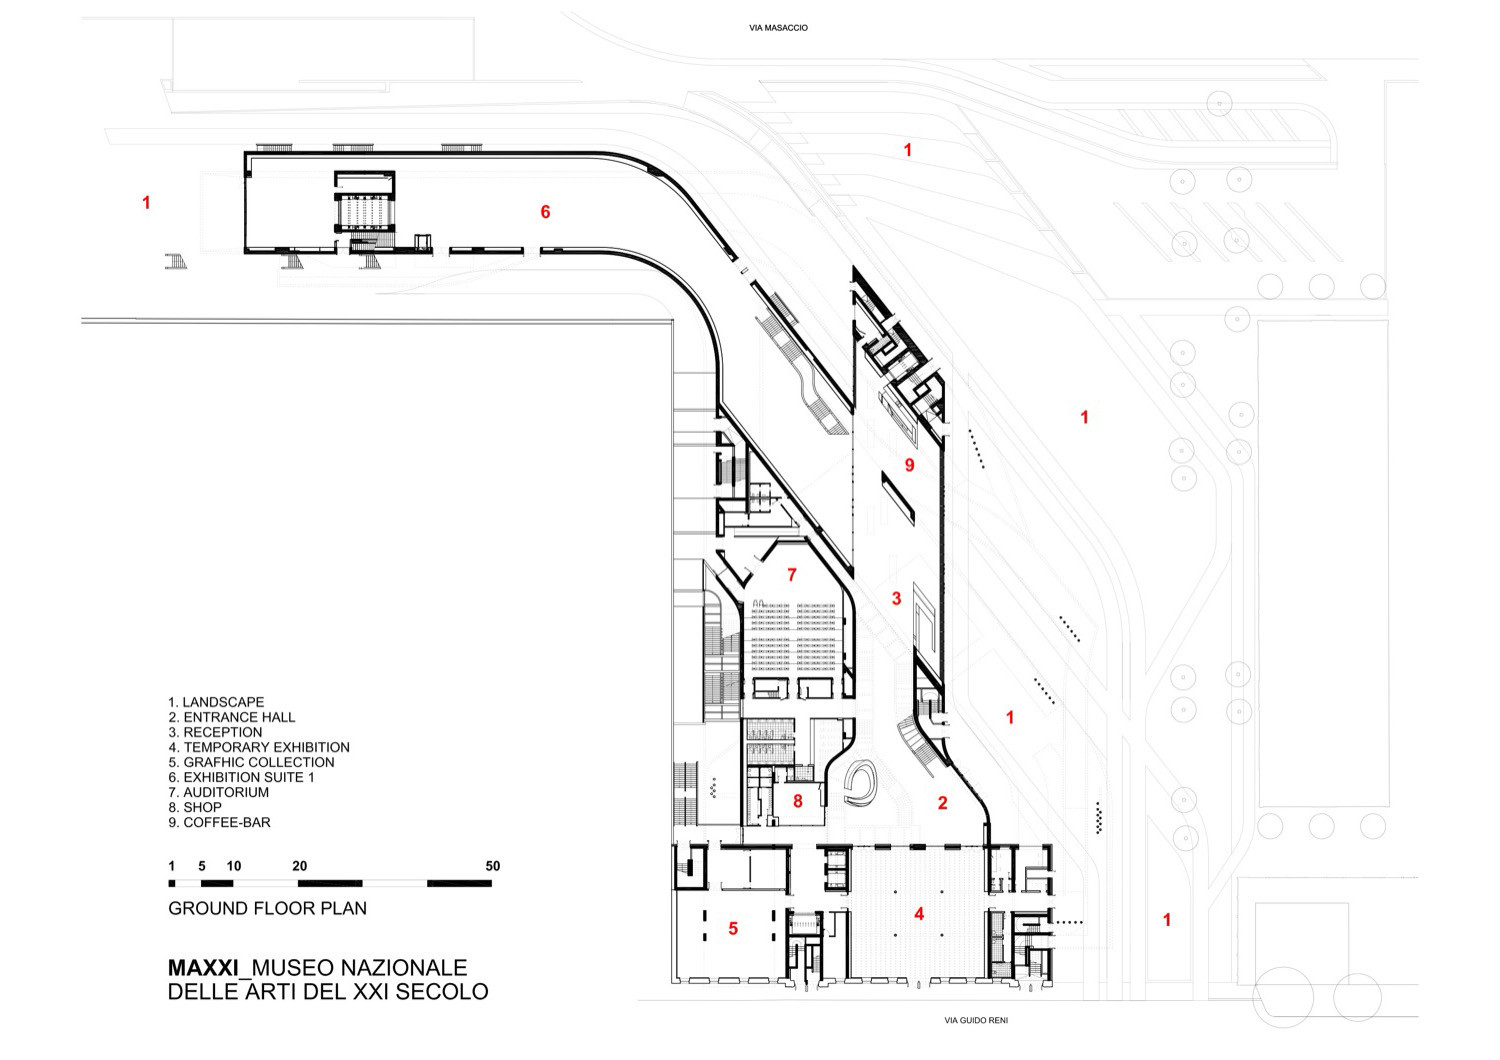 531651adc07a80f19a00005f Graft Penda To Break Ground On Myrtle Garden Hotel Photo furthermore 5008b73e28ba0d50da001925 Macquarie Bank Clive Wilkinson Architects Level 02 Floor Plan in addition 59d39faab22e38efb100010b Lego House Big Second Floor Plan likewise 50120daa28ba0d55810003d2 Maxxi Museum Zaha Hadid Architects in addition 55380dc9e58ece7357000024 Multifunctional Building Fondo In Santa Coloma De Grame  Pich Aguilera Architects Diagram 1. on favorite floor plans